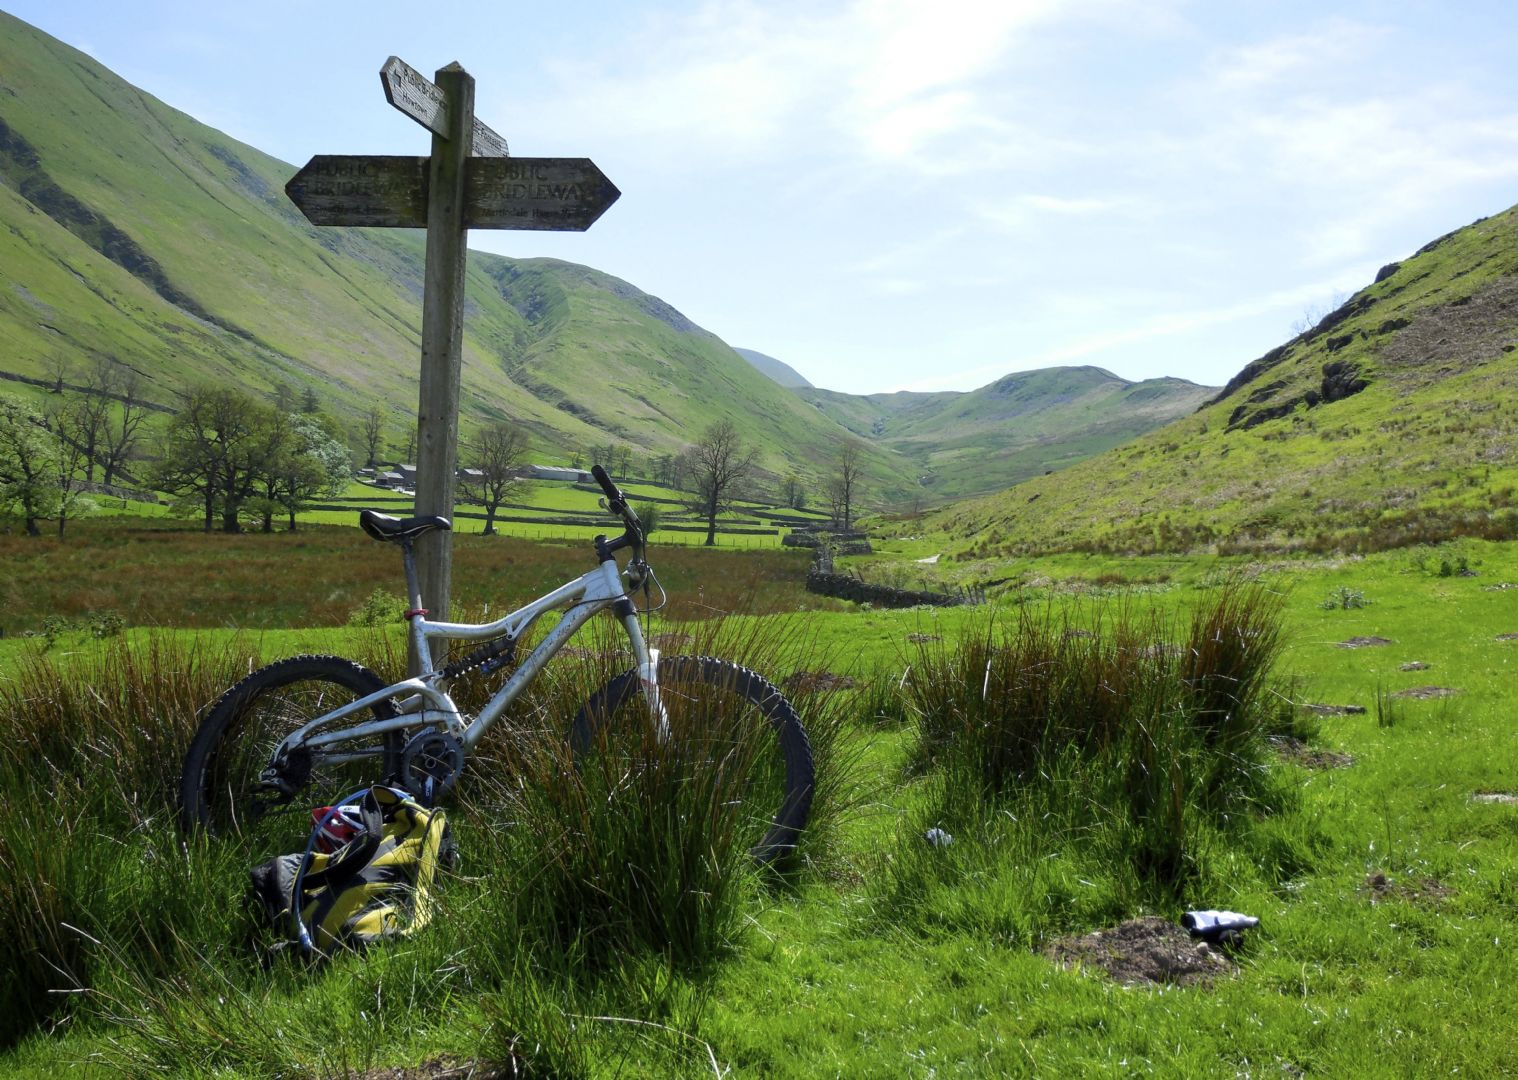 _Customer.53611.16234.jpg - UK - Lake District - Ullswater - Guided Mountain Bike Weekend - Mountain Biking